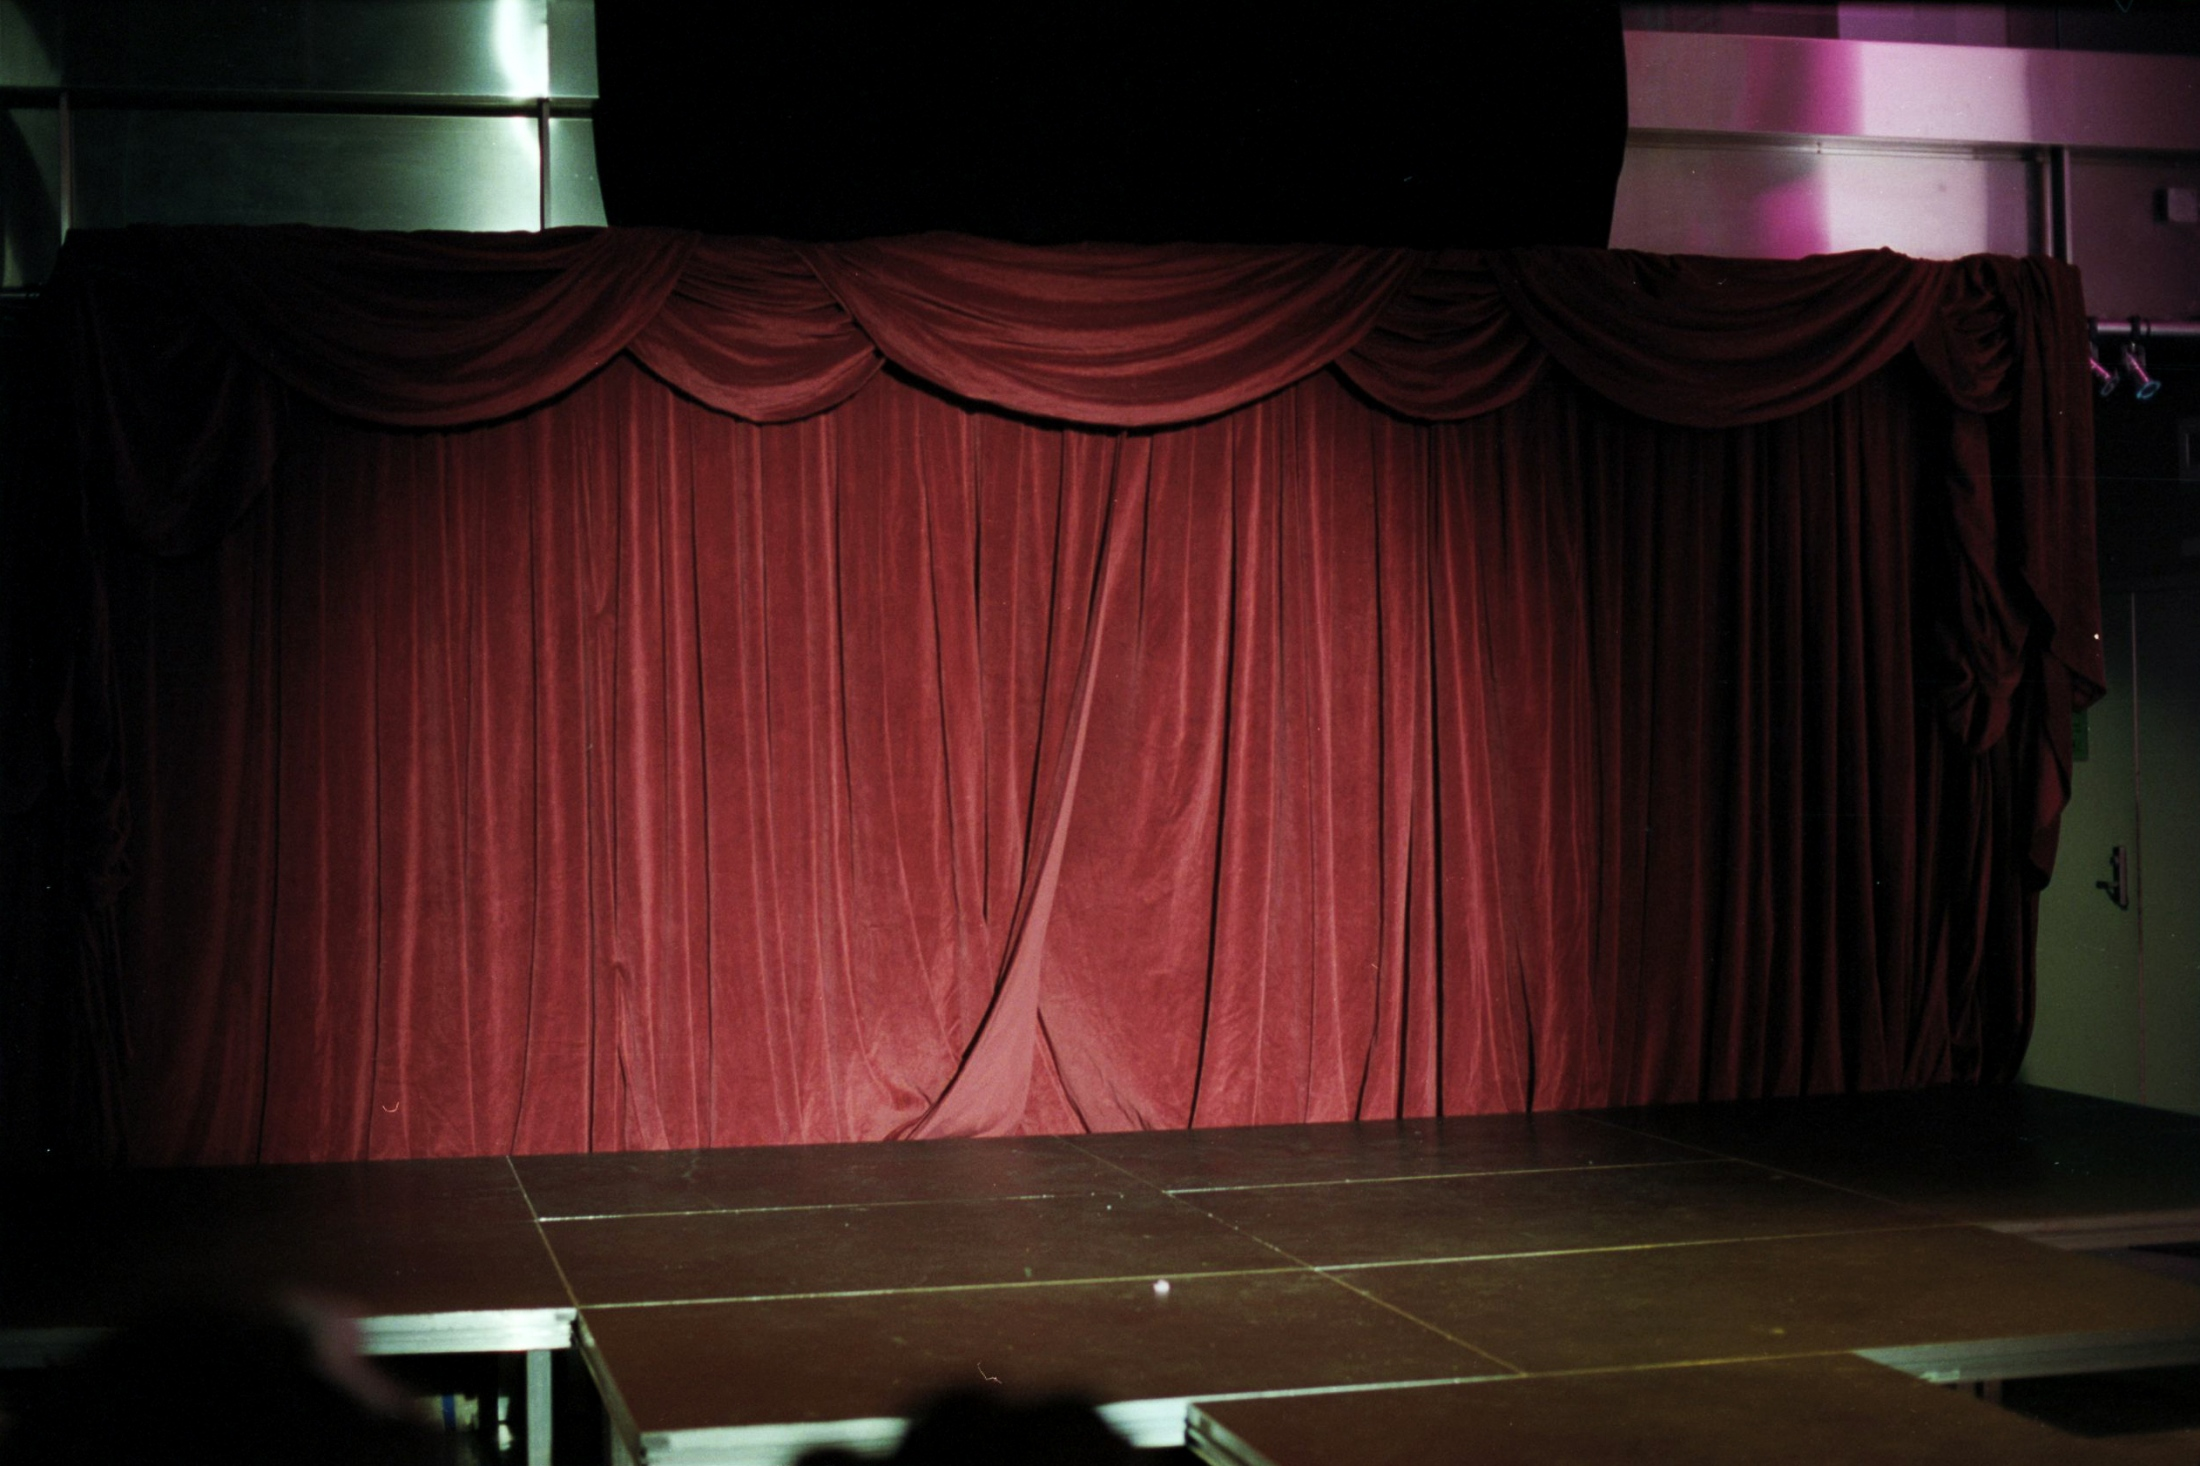 The curtain at a drag contest, New York, NY